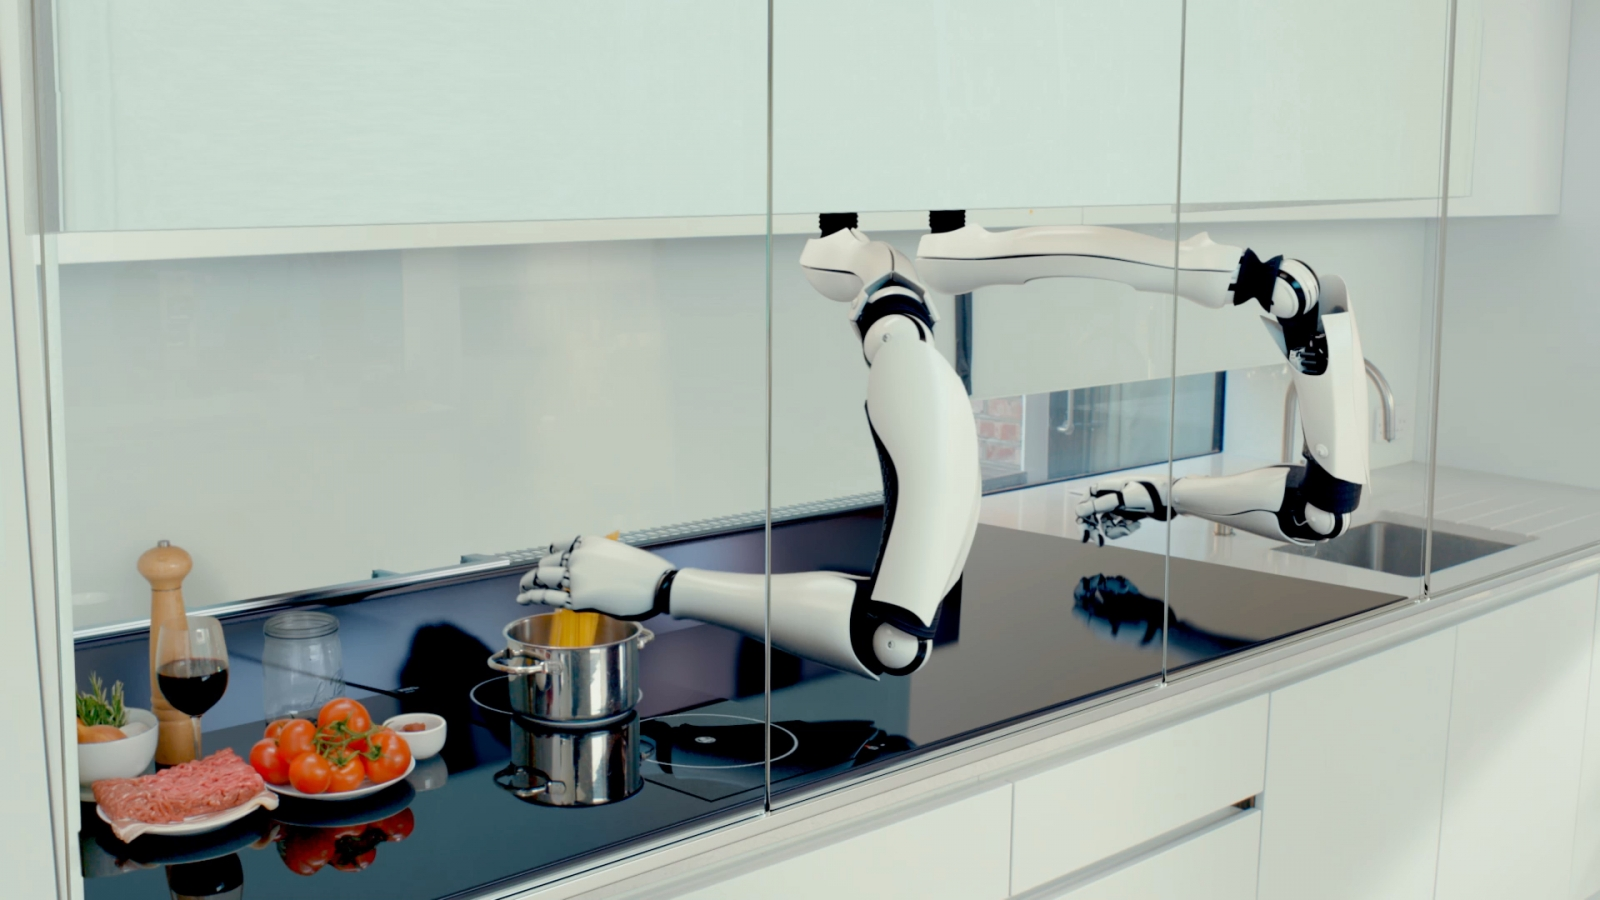 Moley robotic chef